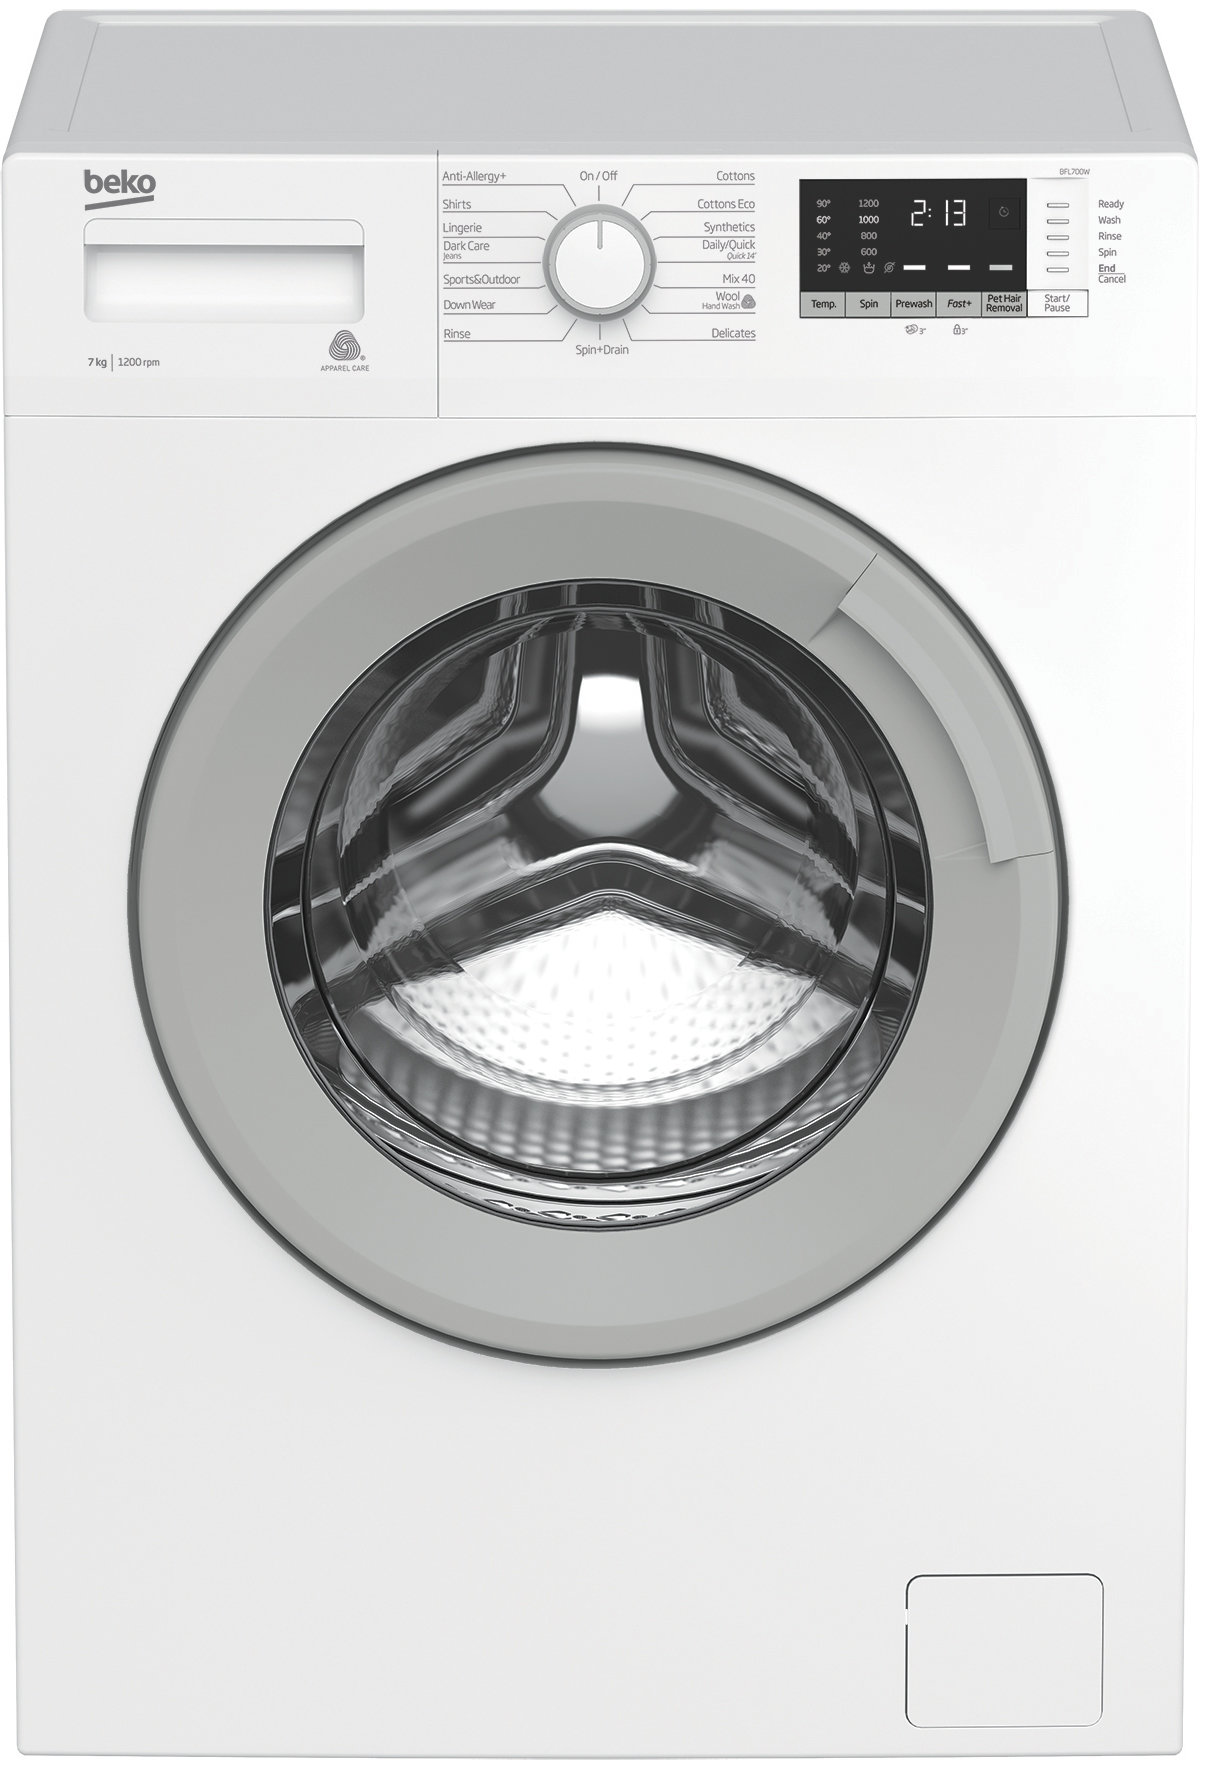 Beko BFL700W 7kg Front Load Washing Machine 105210